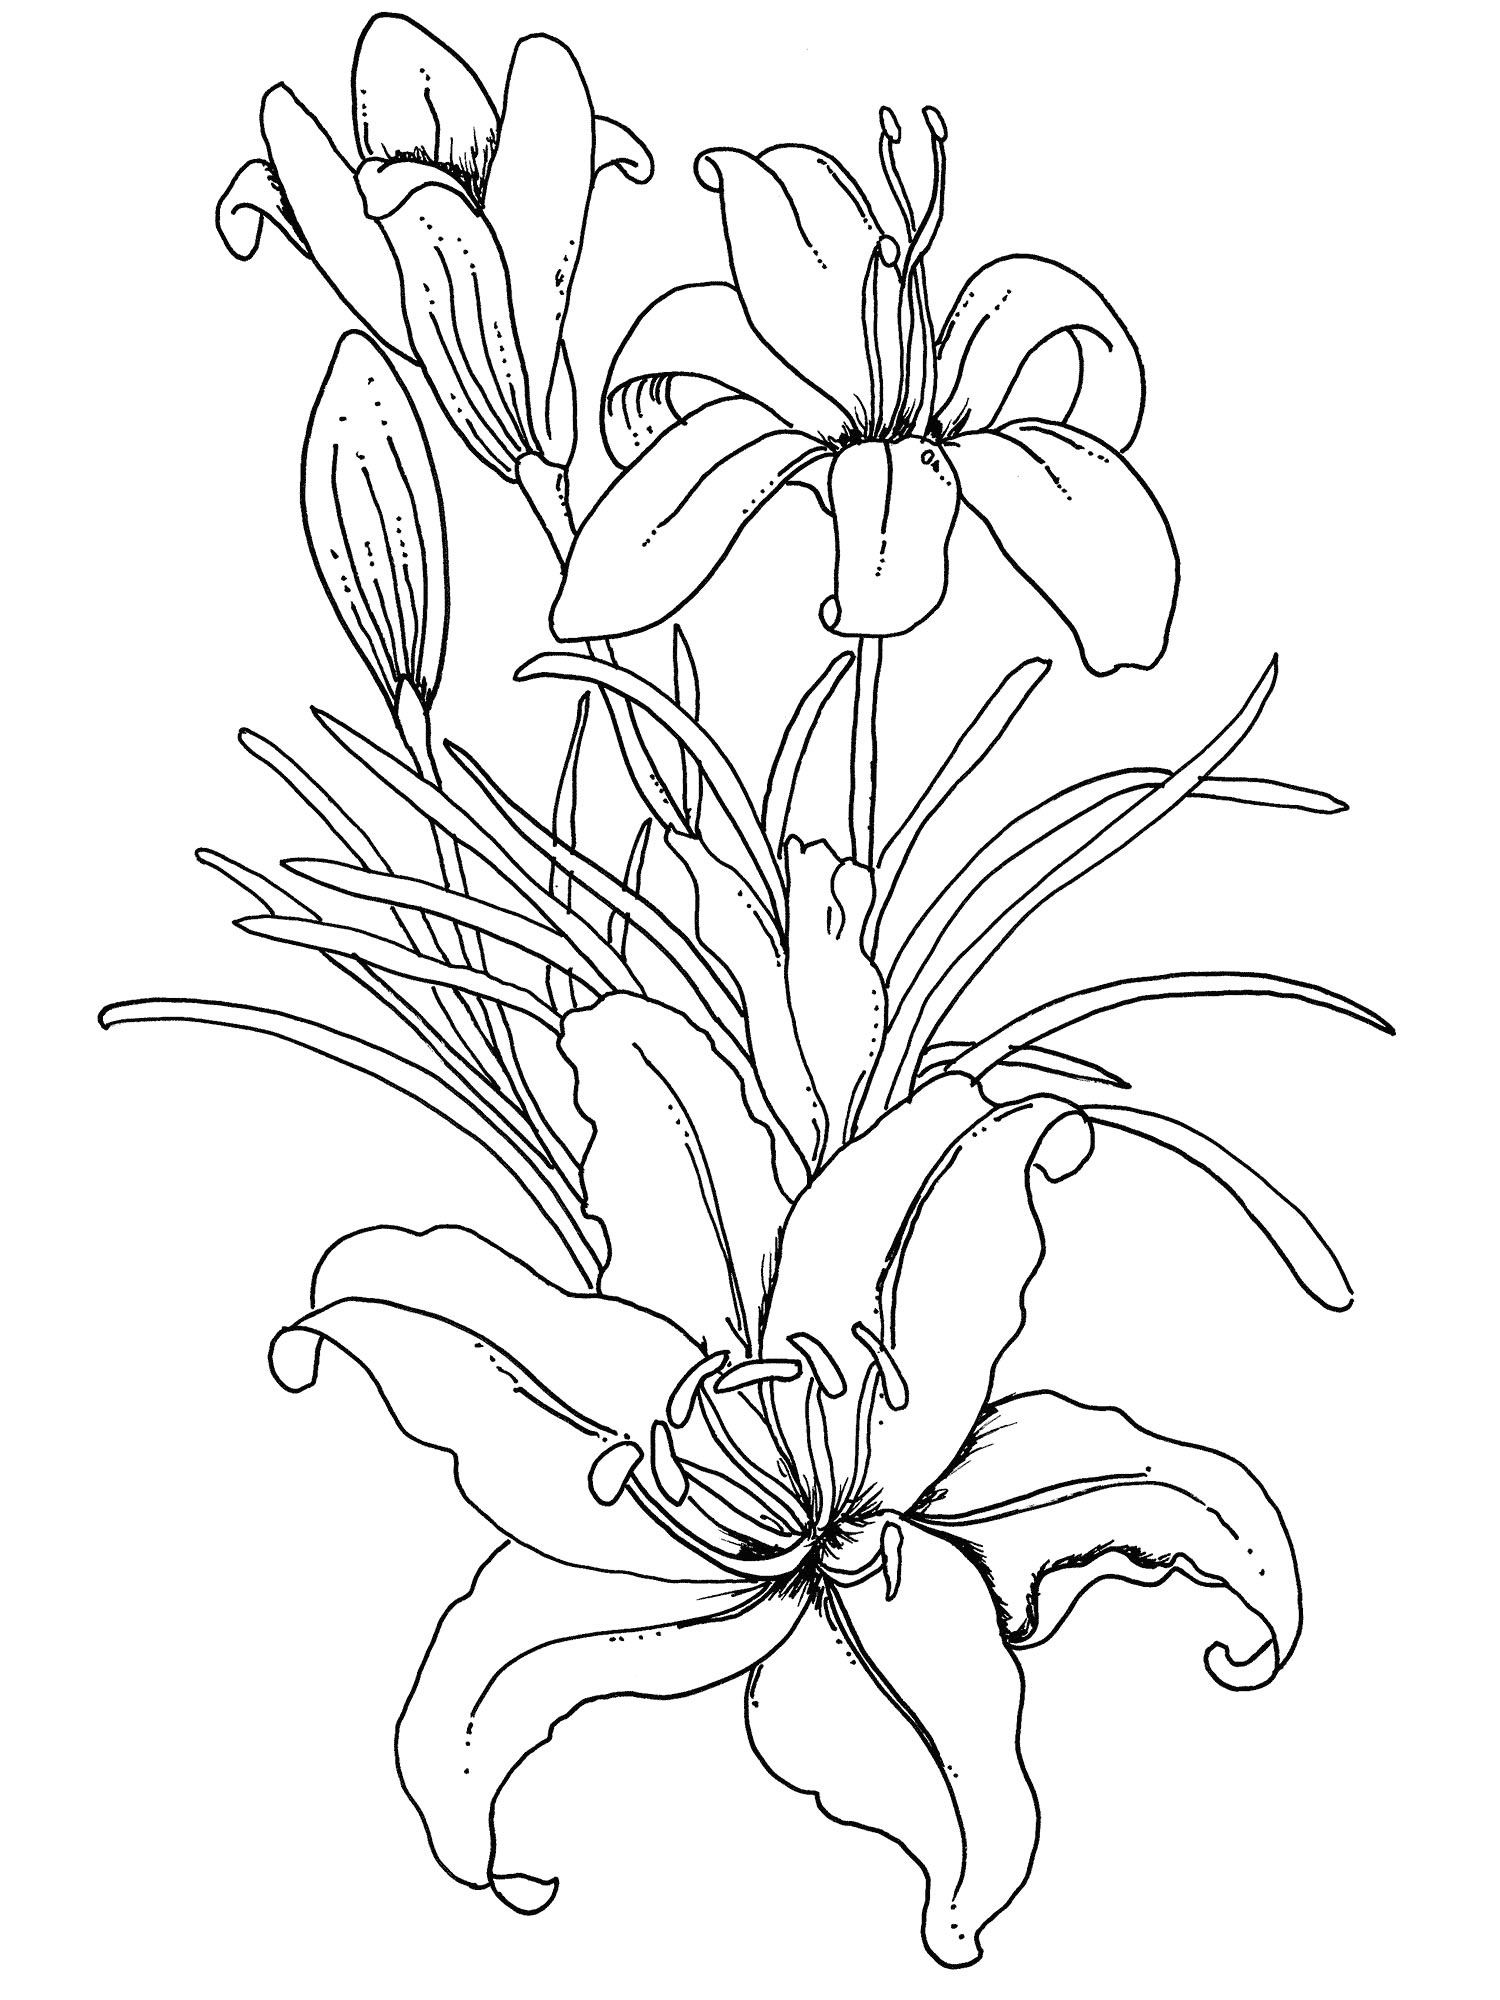 coloring books for adults flowers free printable flower coloring pages for kids cool2bkids flowers coloring books for adults